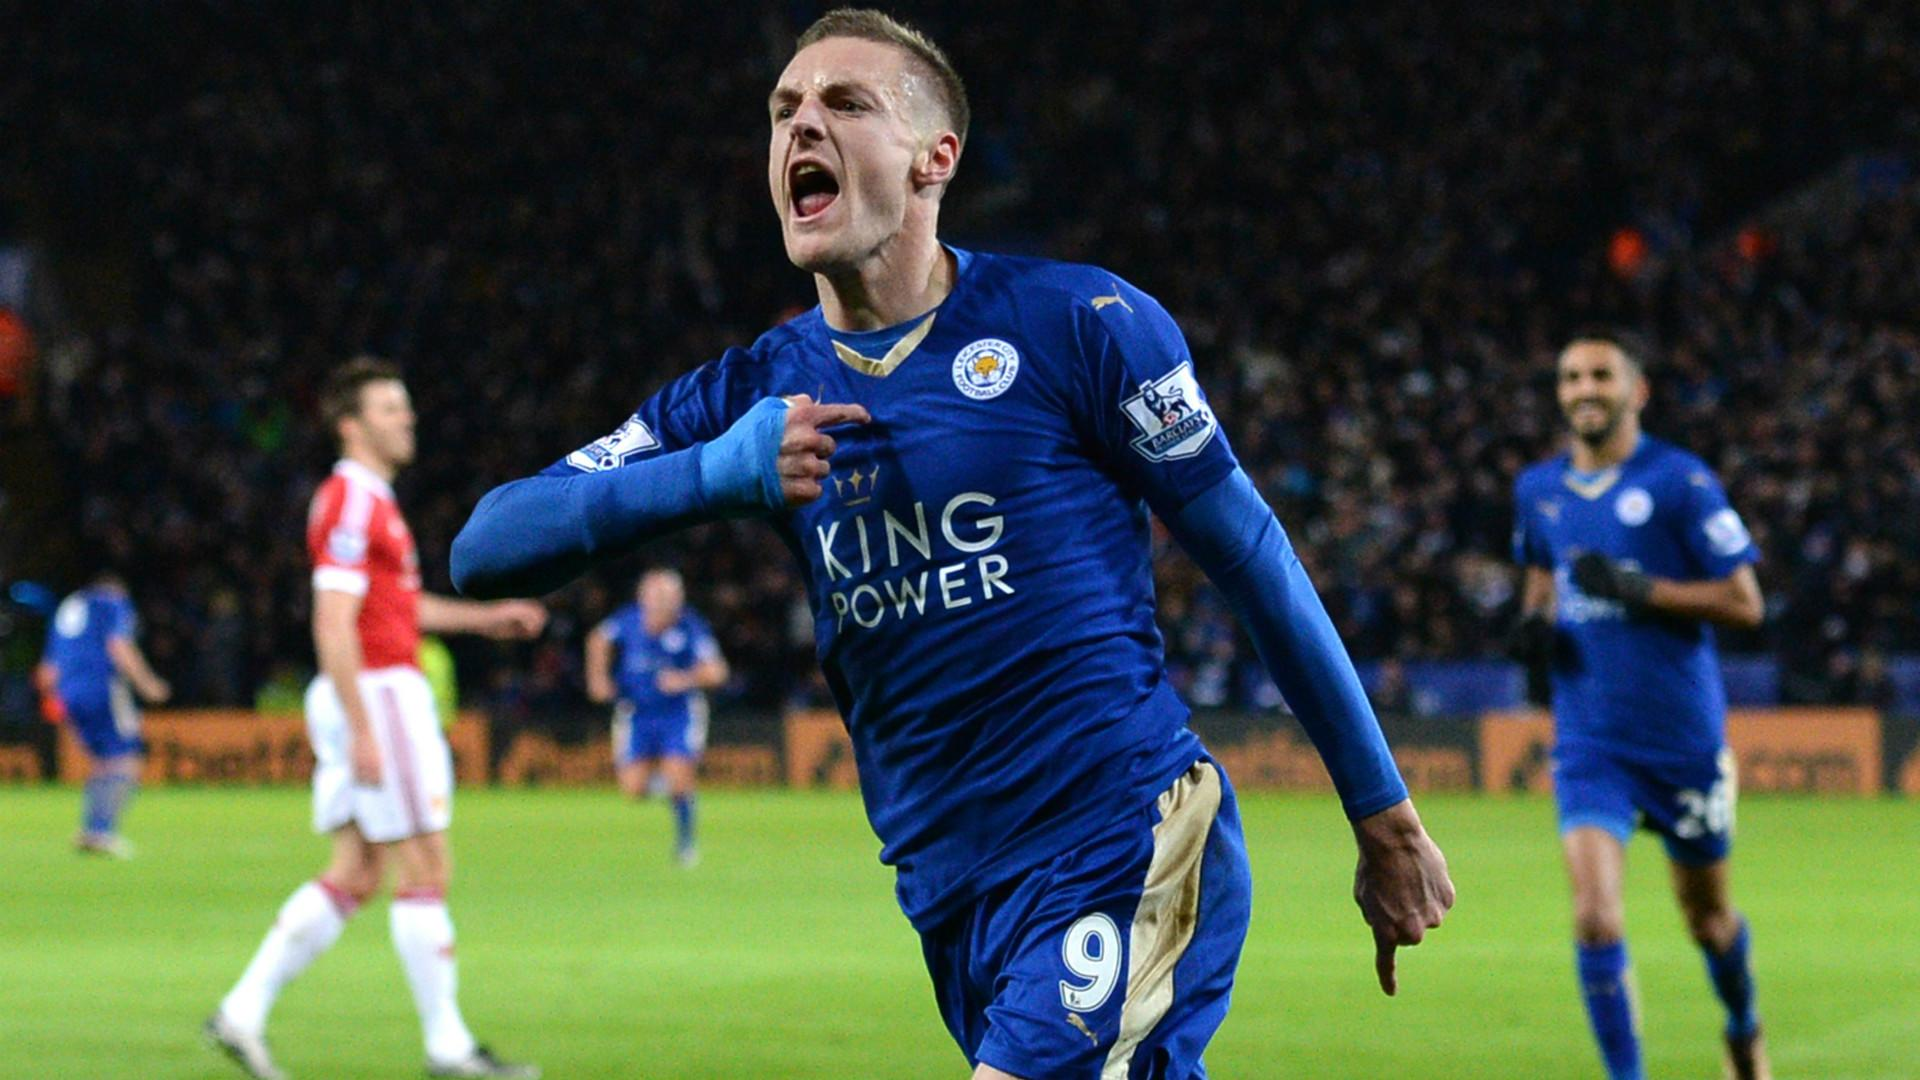 Grayson: Vardy sums up Leicester brilliance - and Brad Pitt should play him on screen